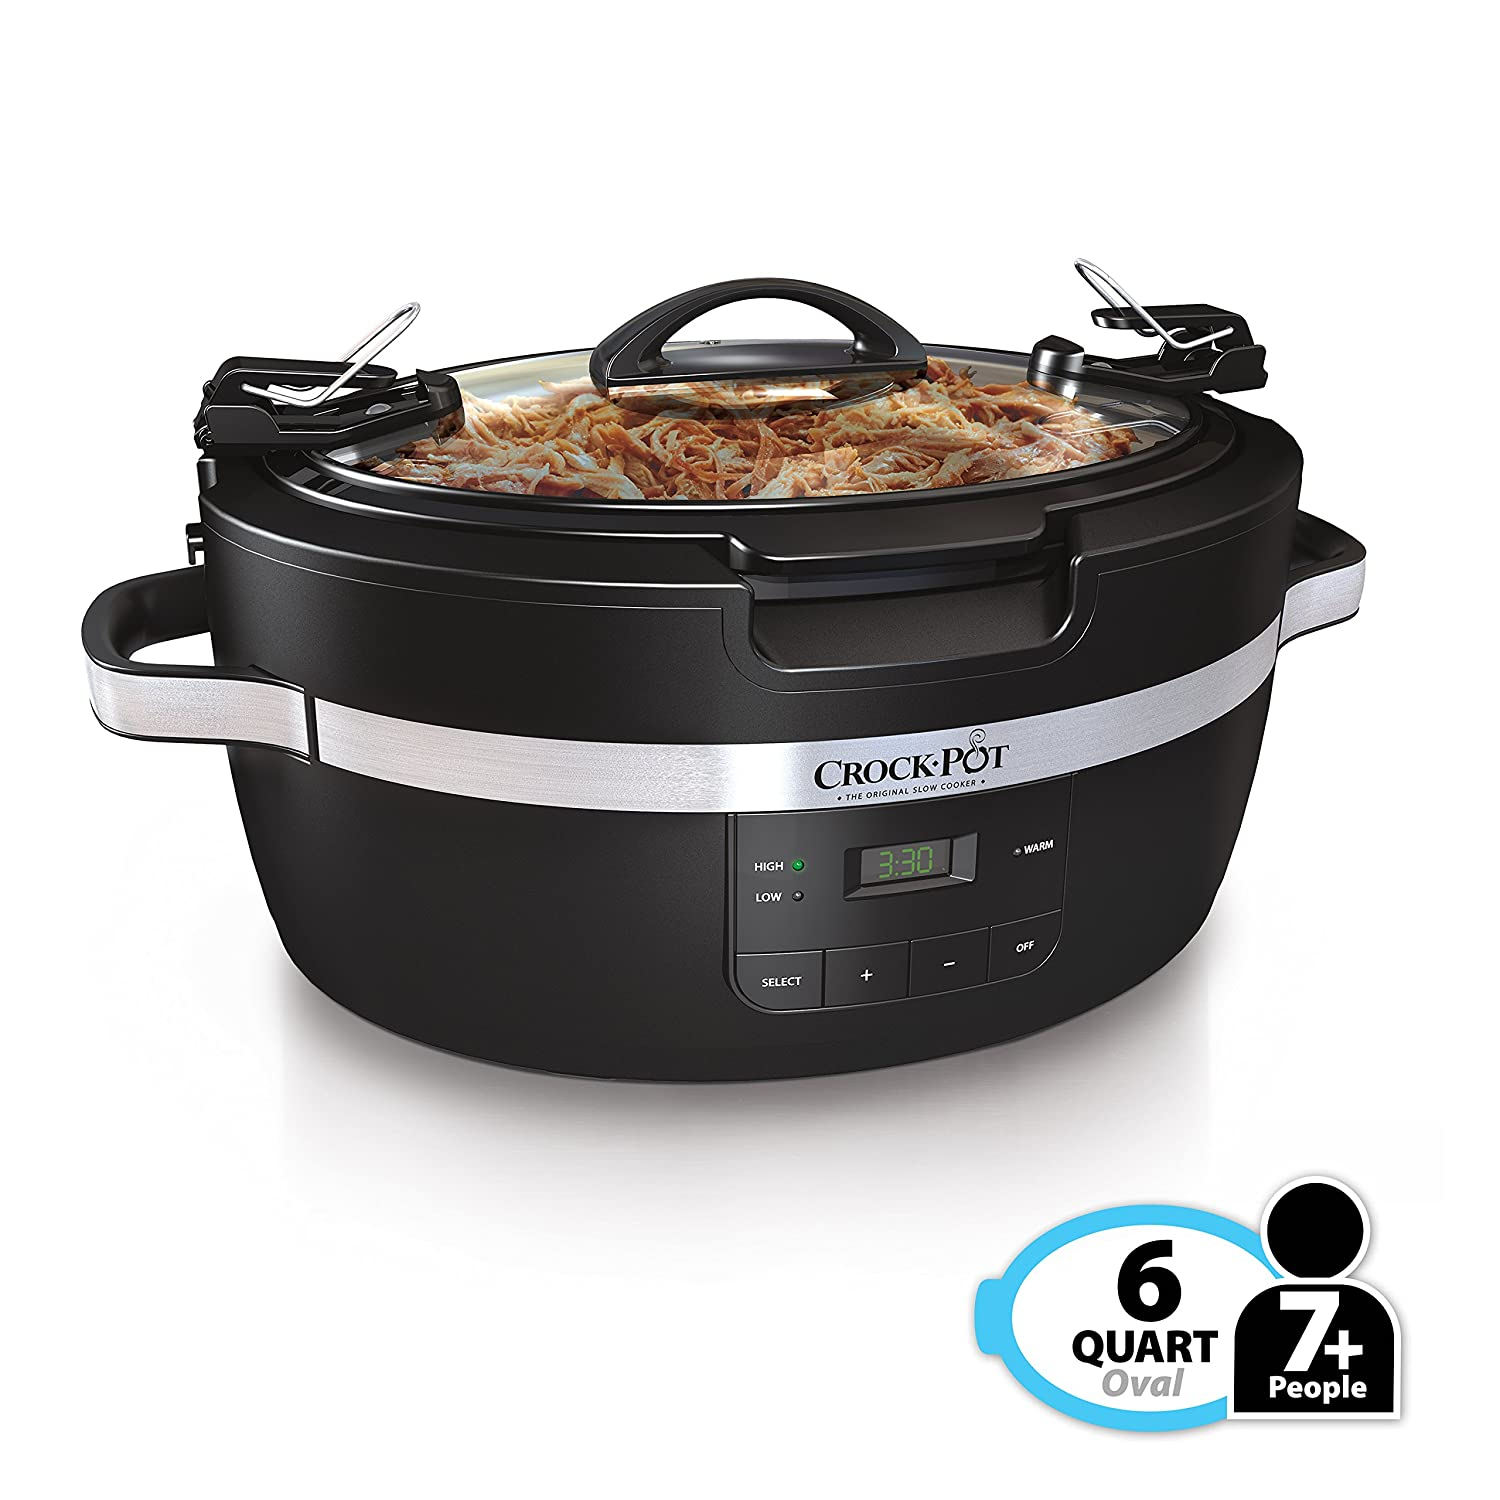 Crockpot SCCPCT600-B Thermoshield Slow Cooker 6 quart Black